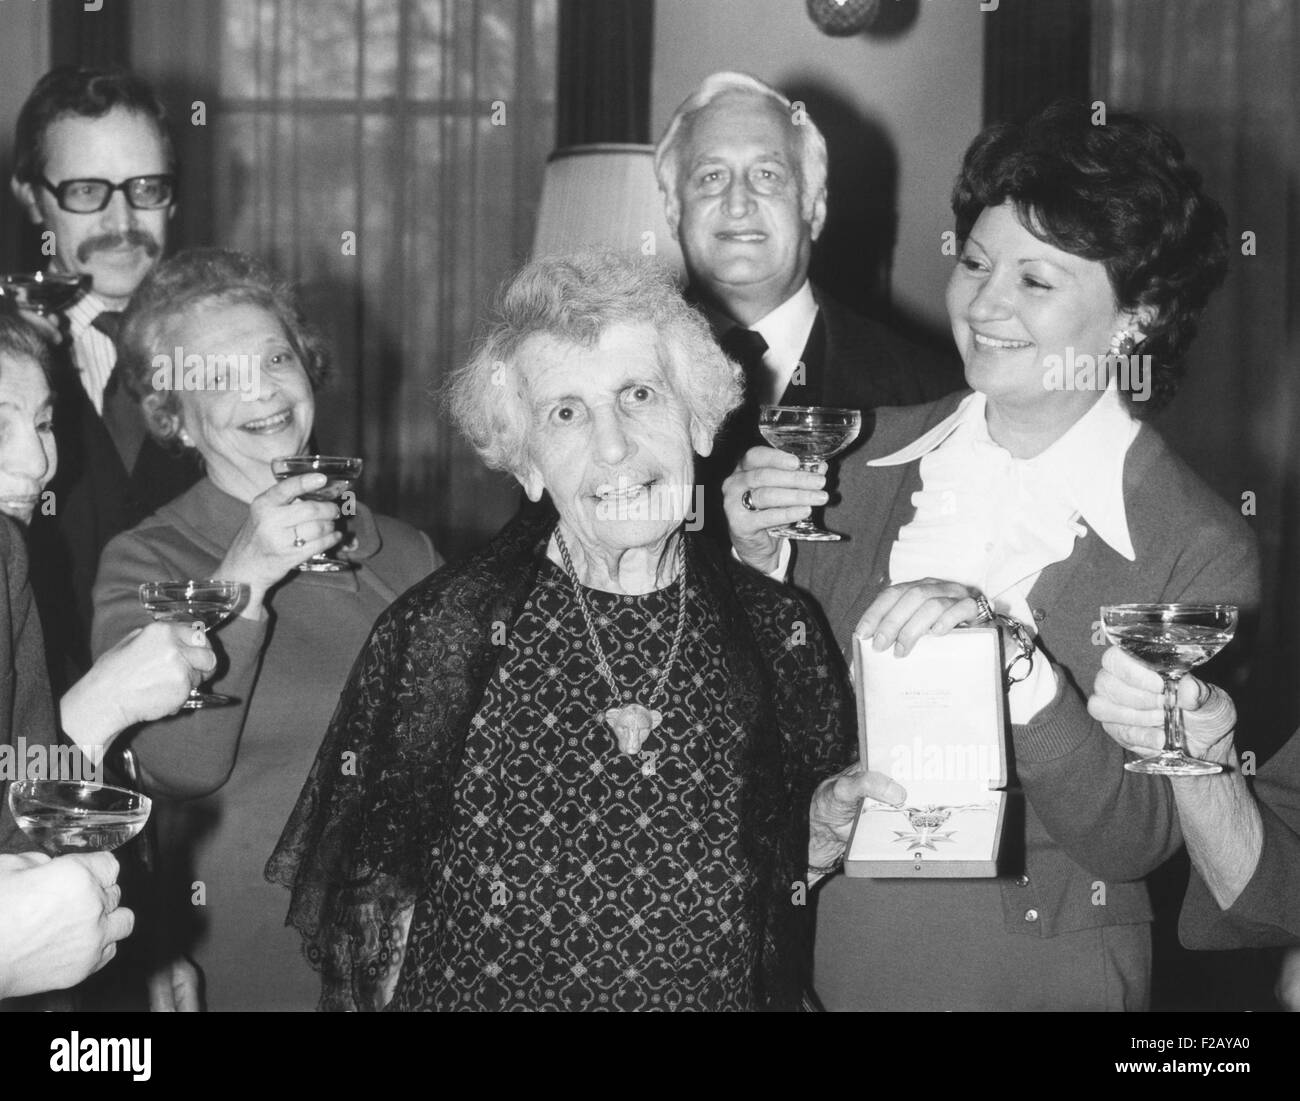 Anna Freud, was presented the Grand Decoration of Honor in Gold for her services to Austria. Dec. 24, 1975. The - Stock Image